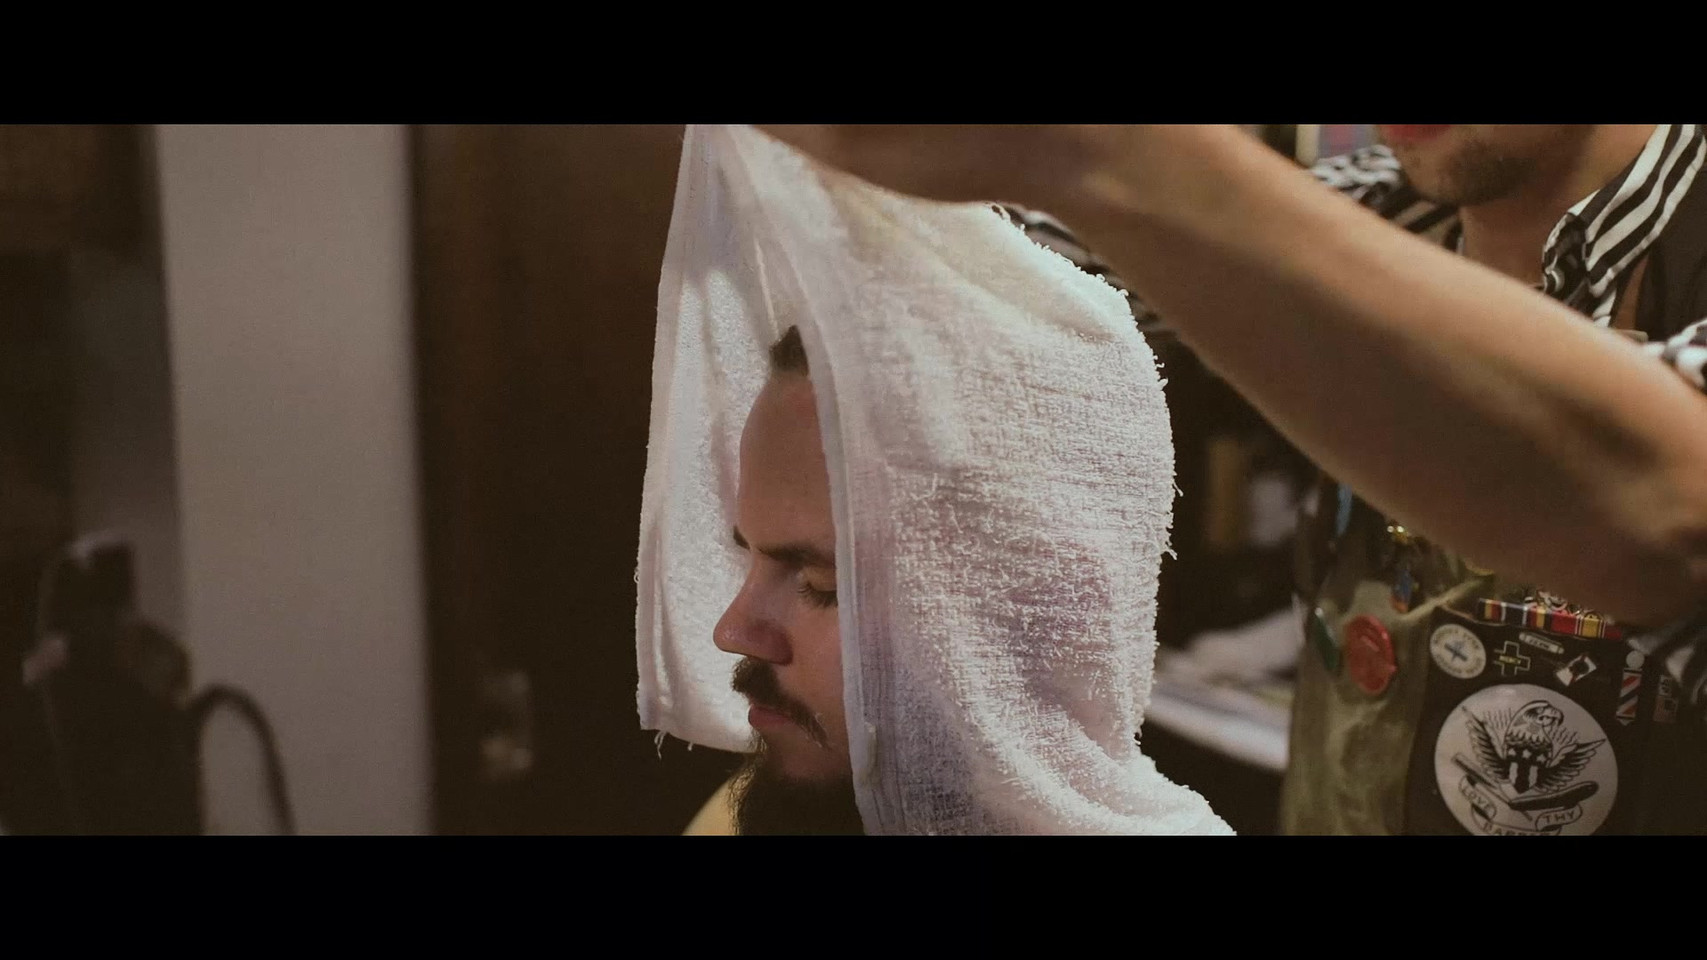 The Man Barber Promo Video